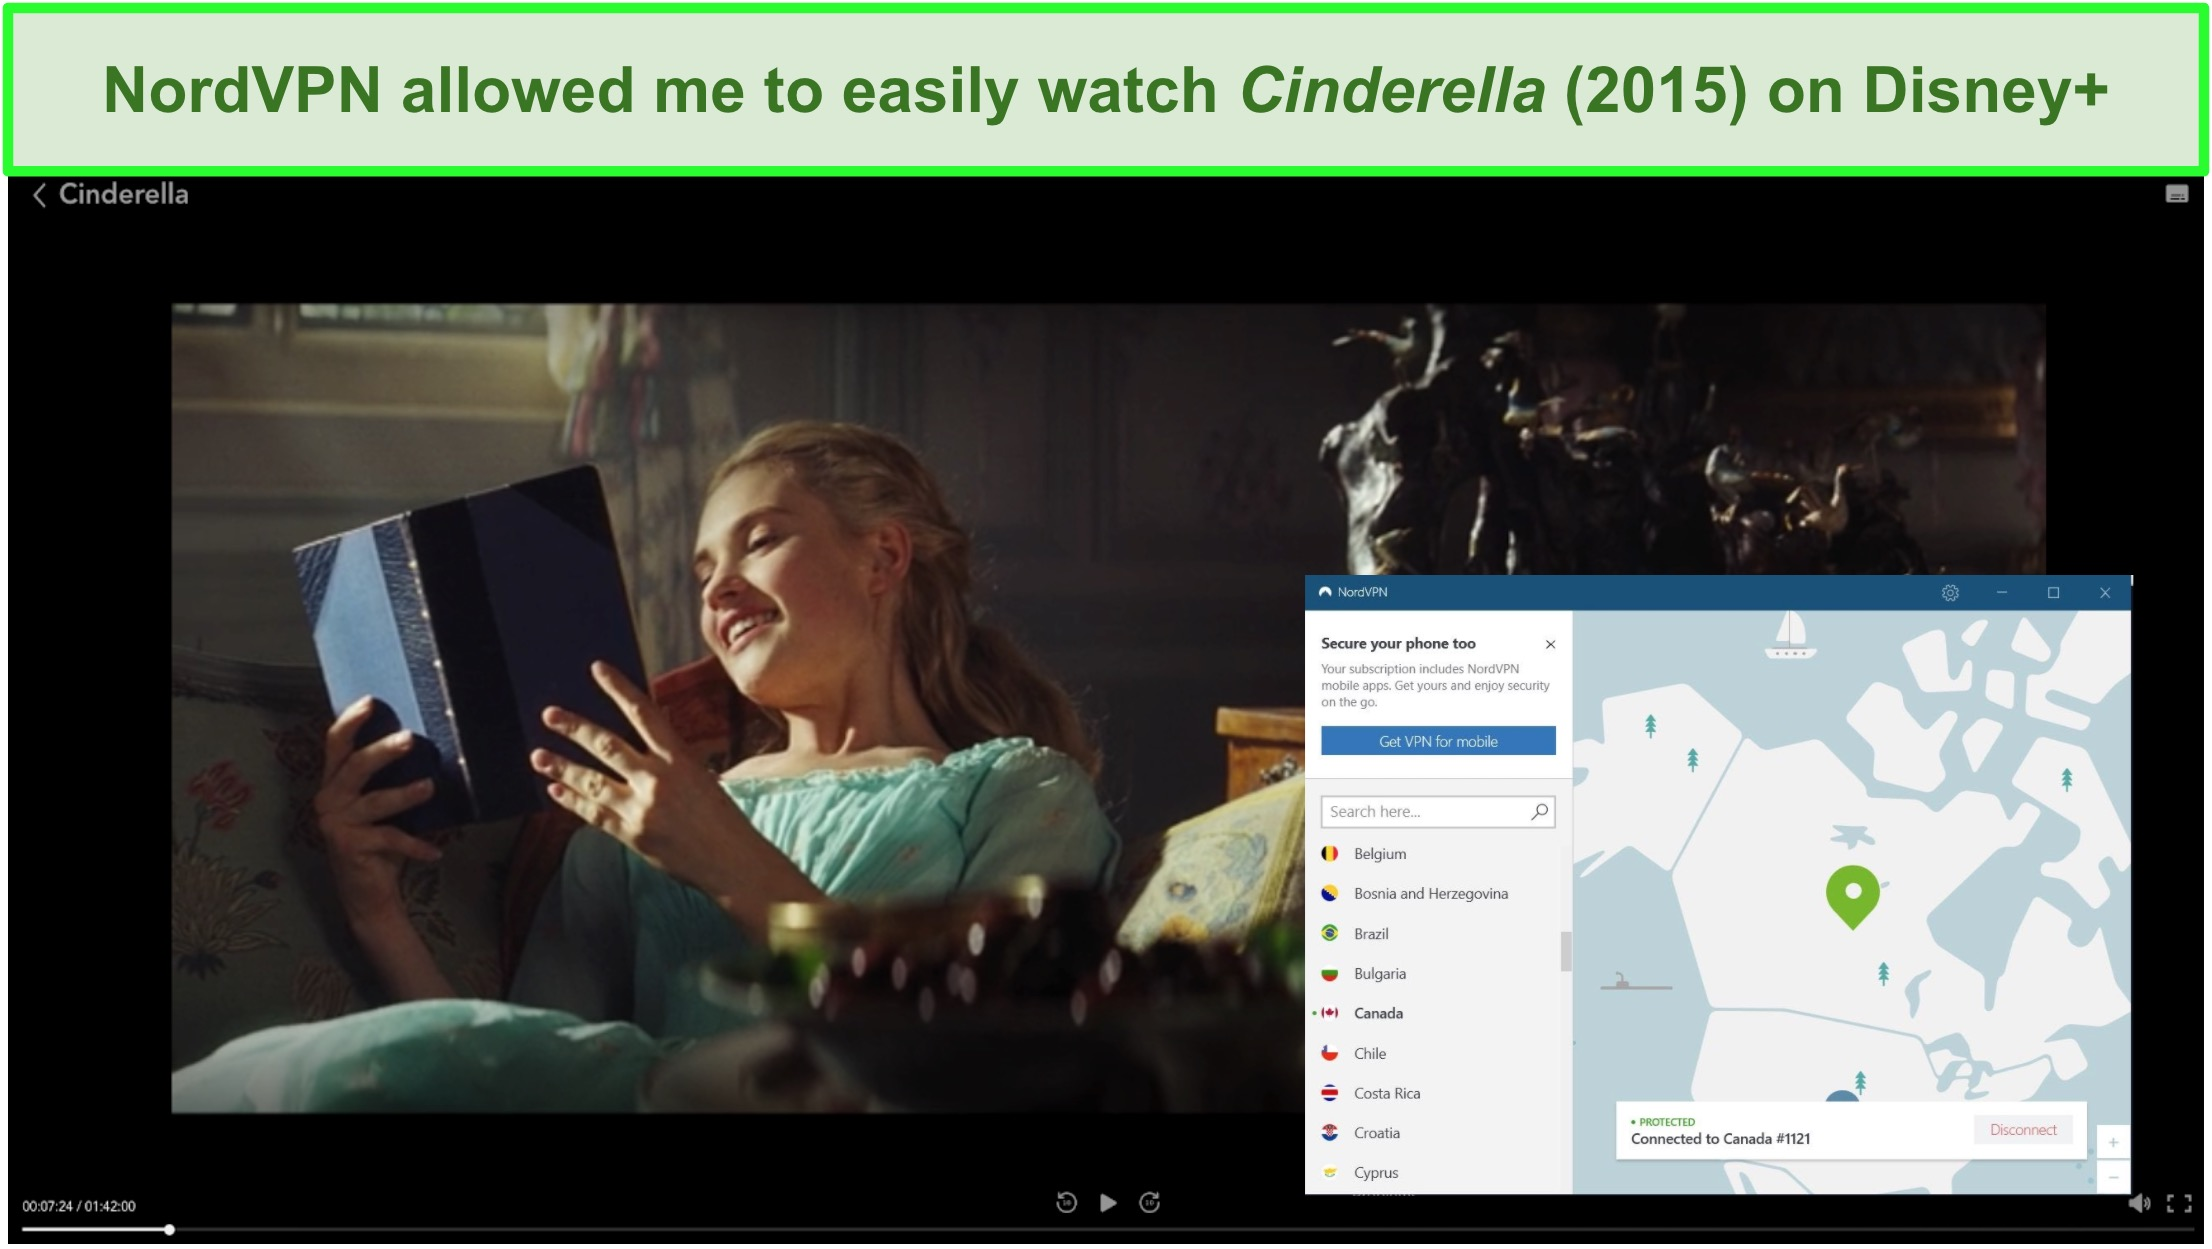 Screenshot of successfully streaming Cinderella (2015) with NordVPN.